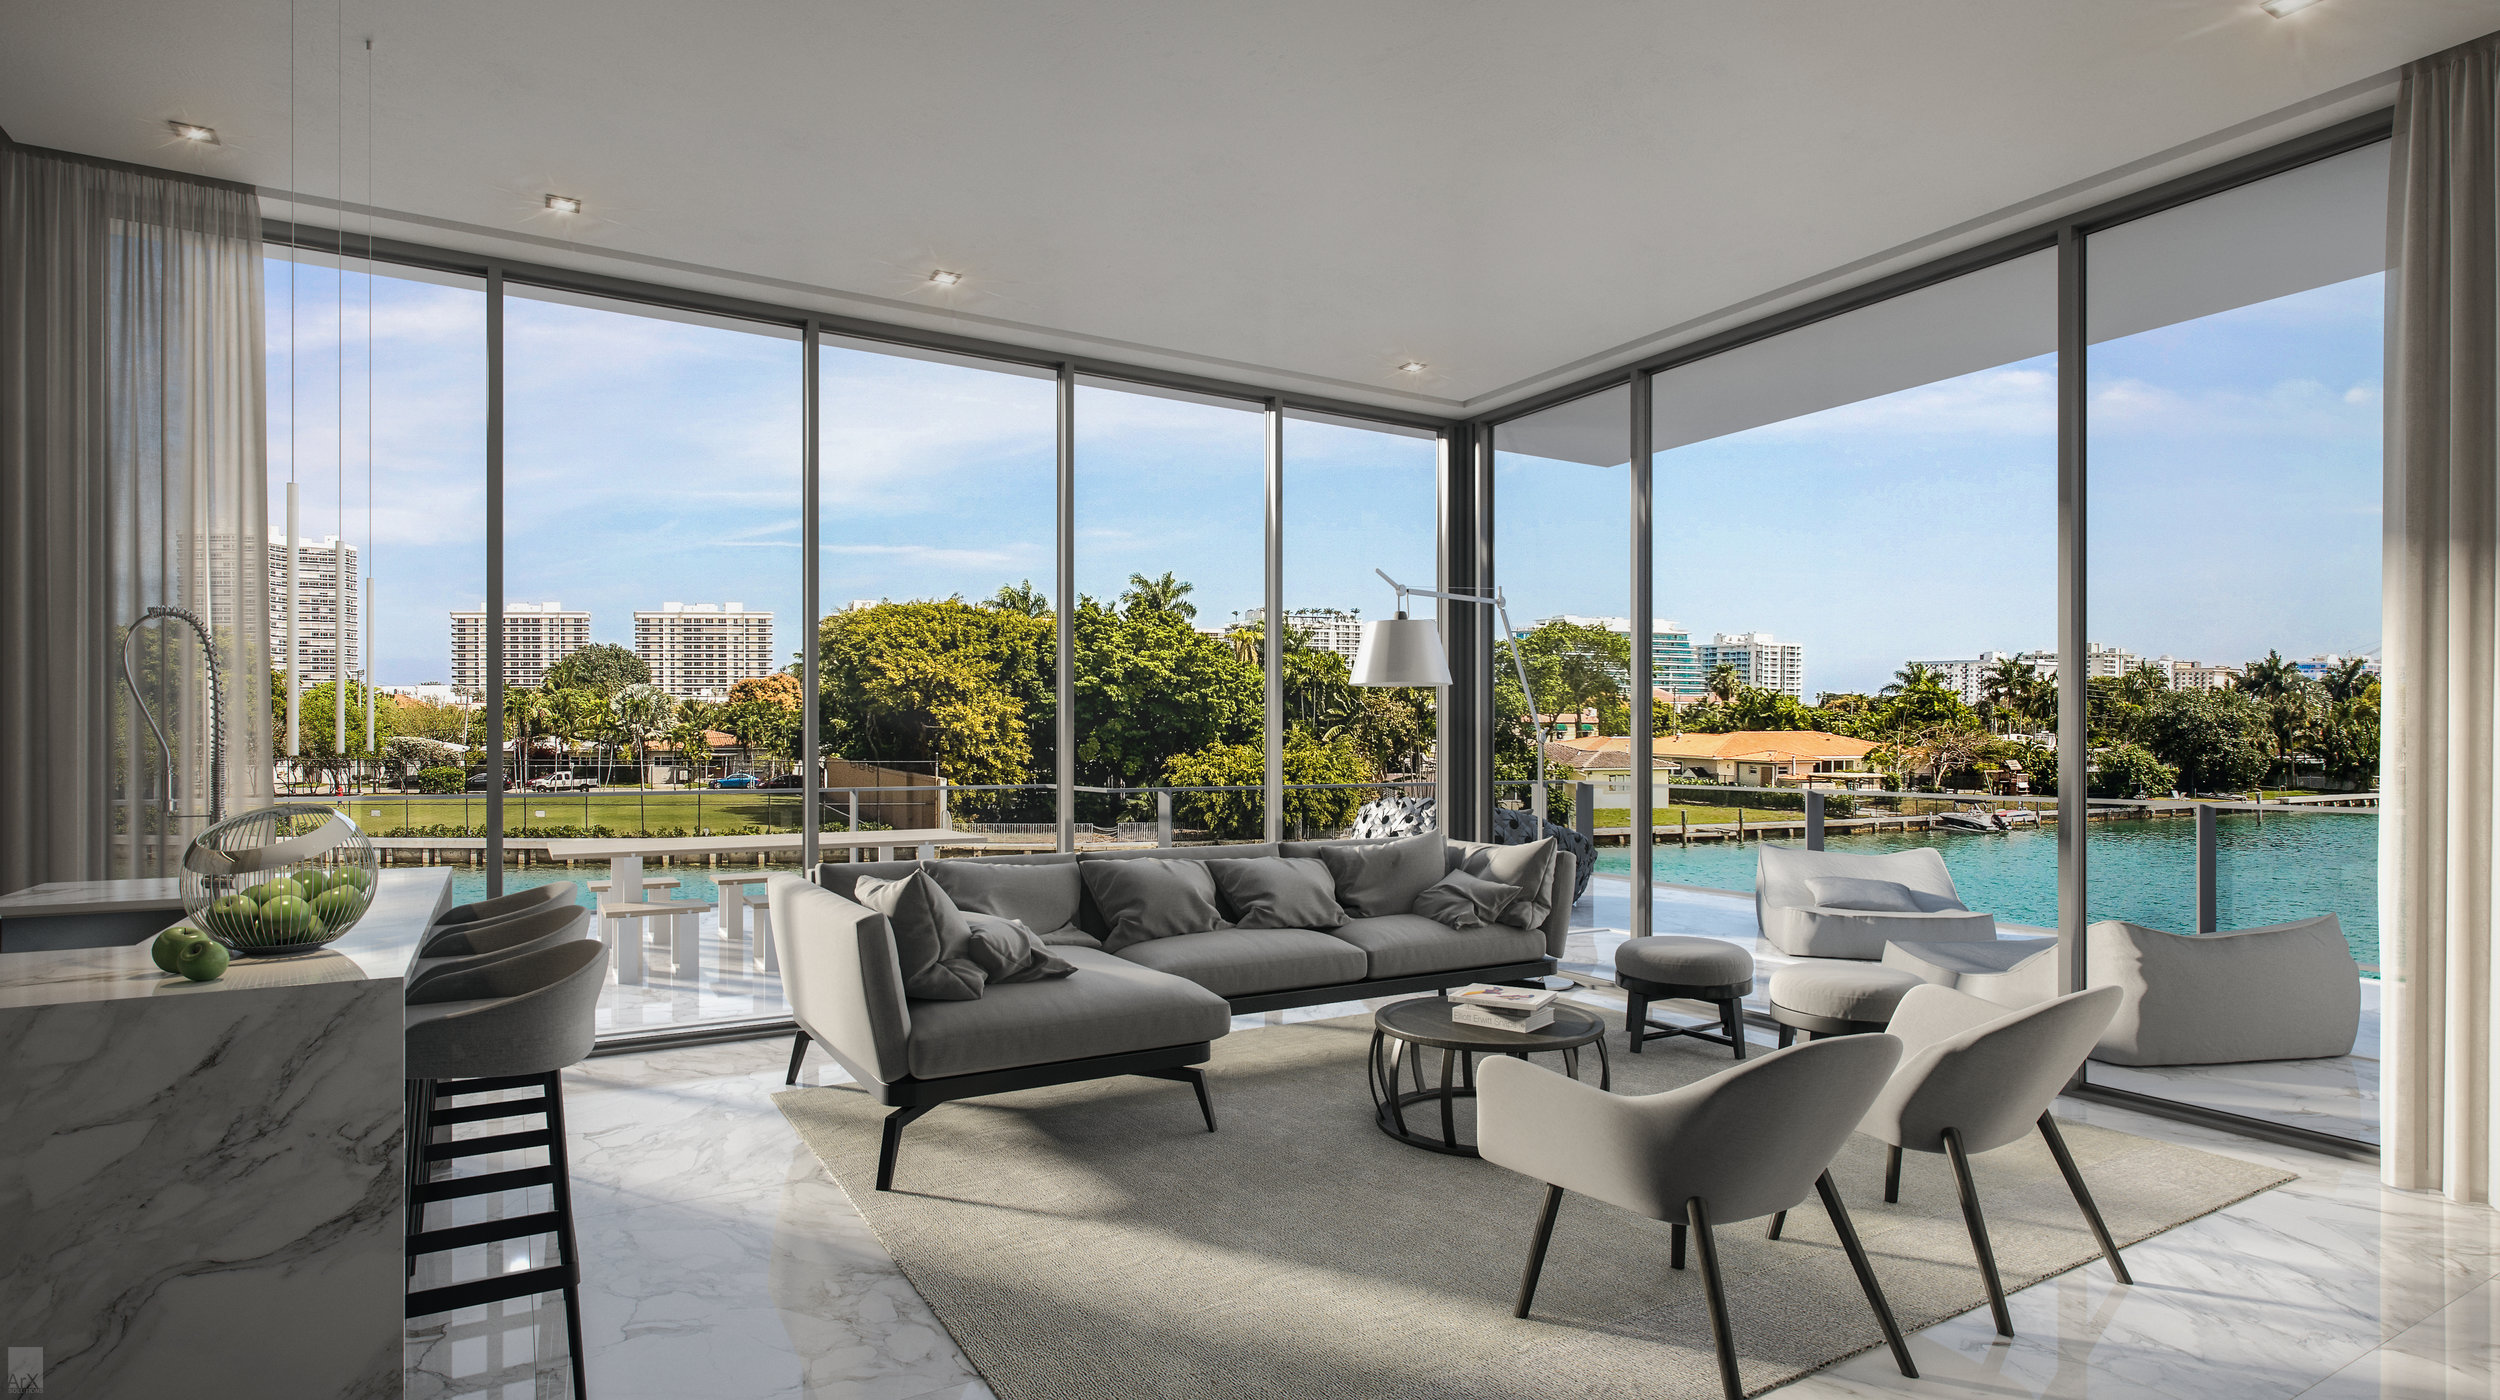 The+Revuelta+Architecture-Designed+Bijou+Bay+Harbor+Now+75%+Sold+Out (5).jpeg